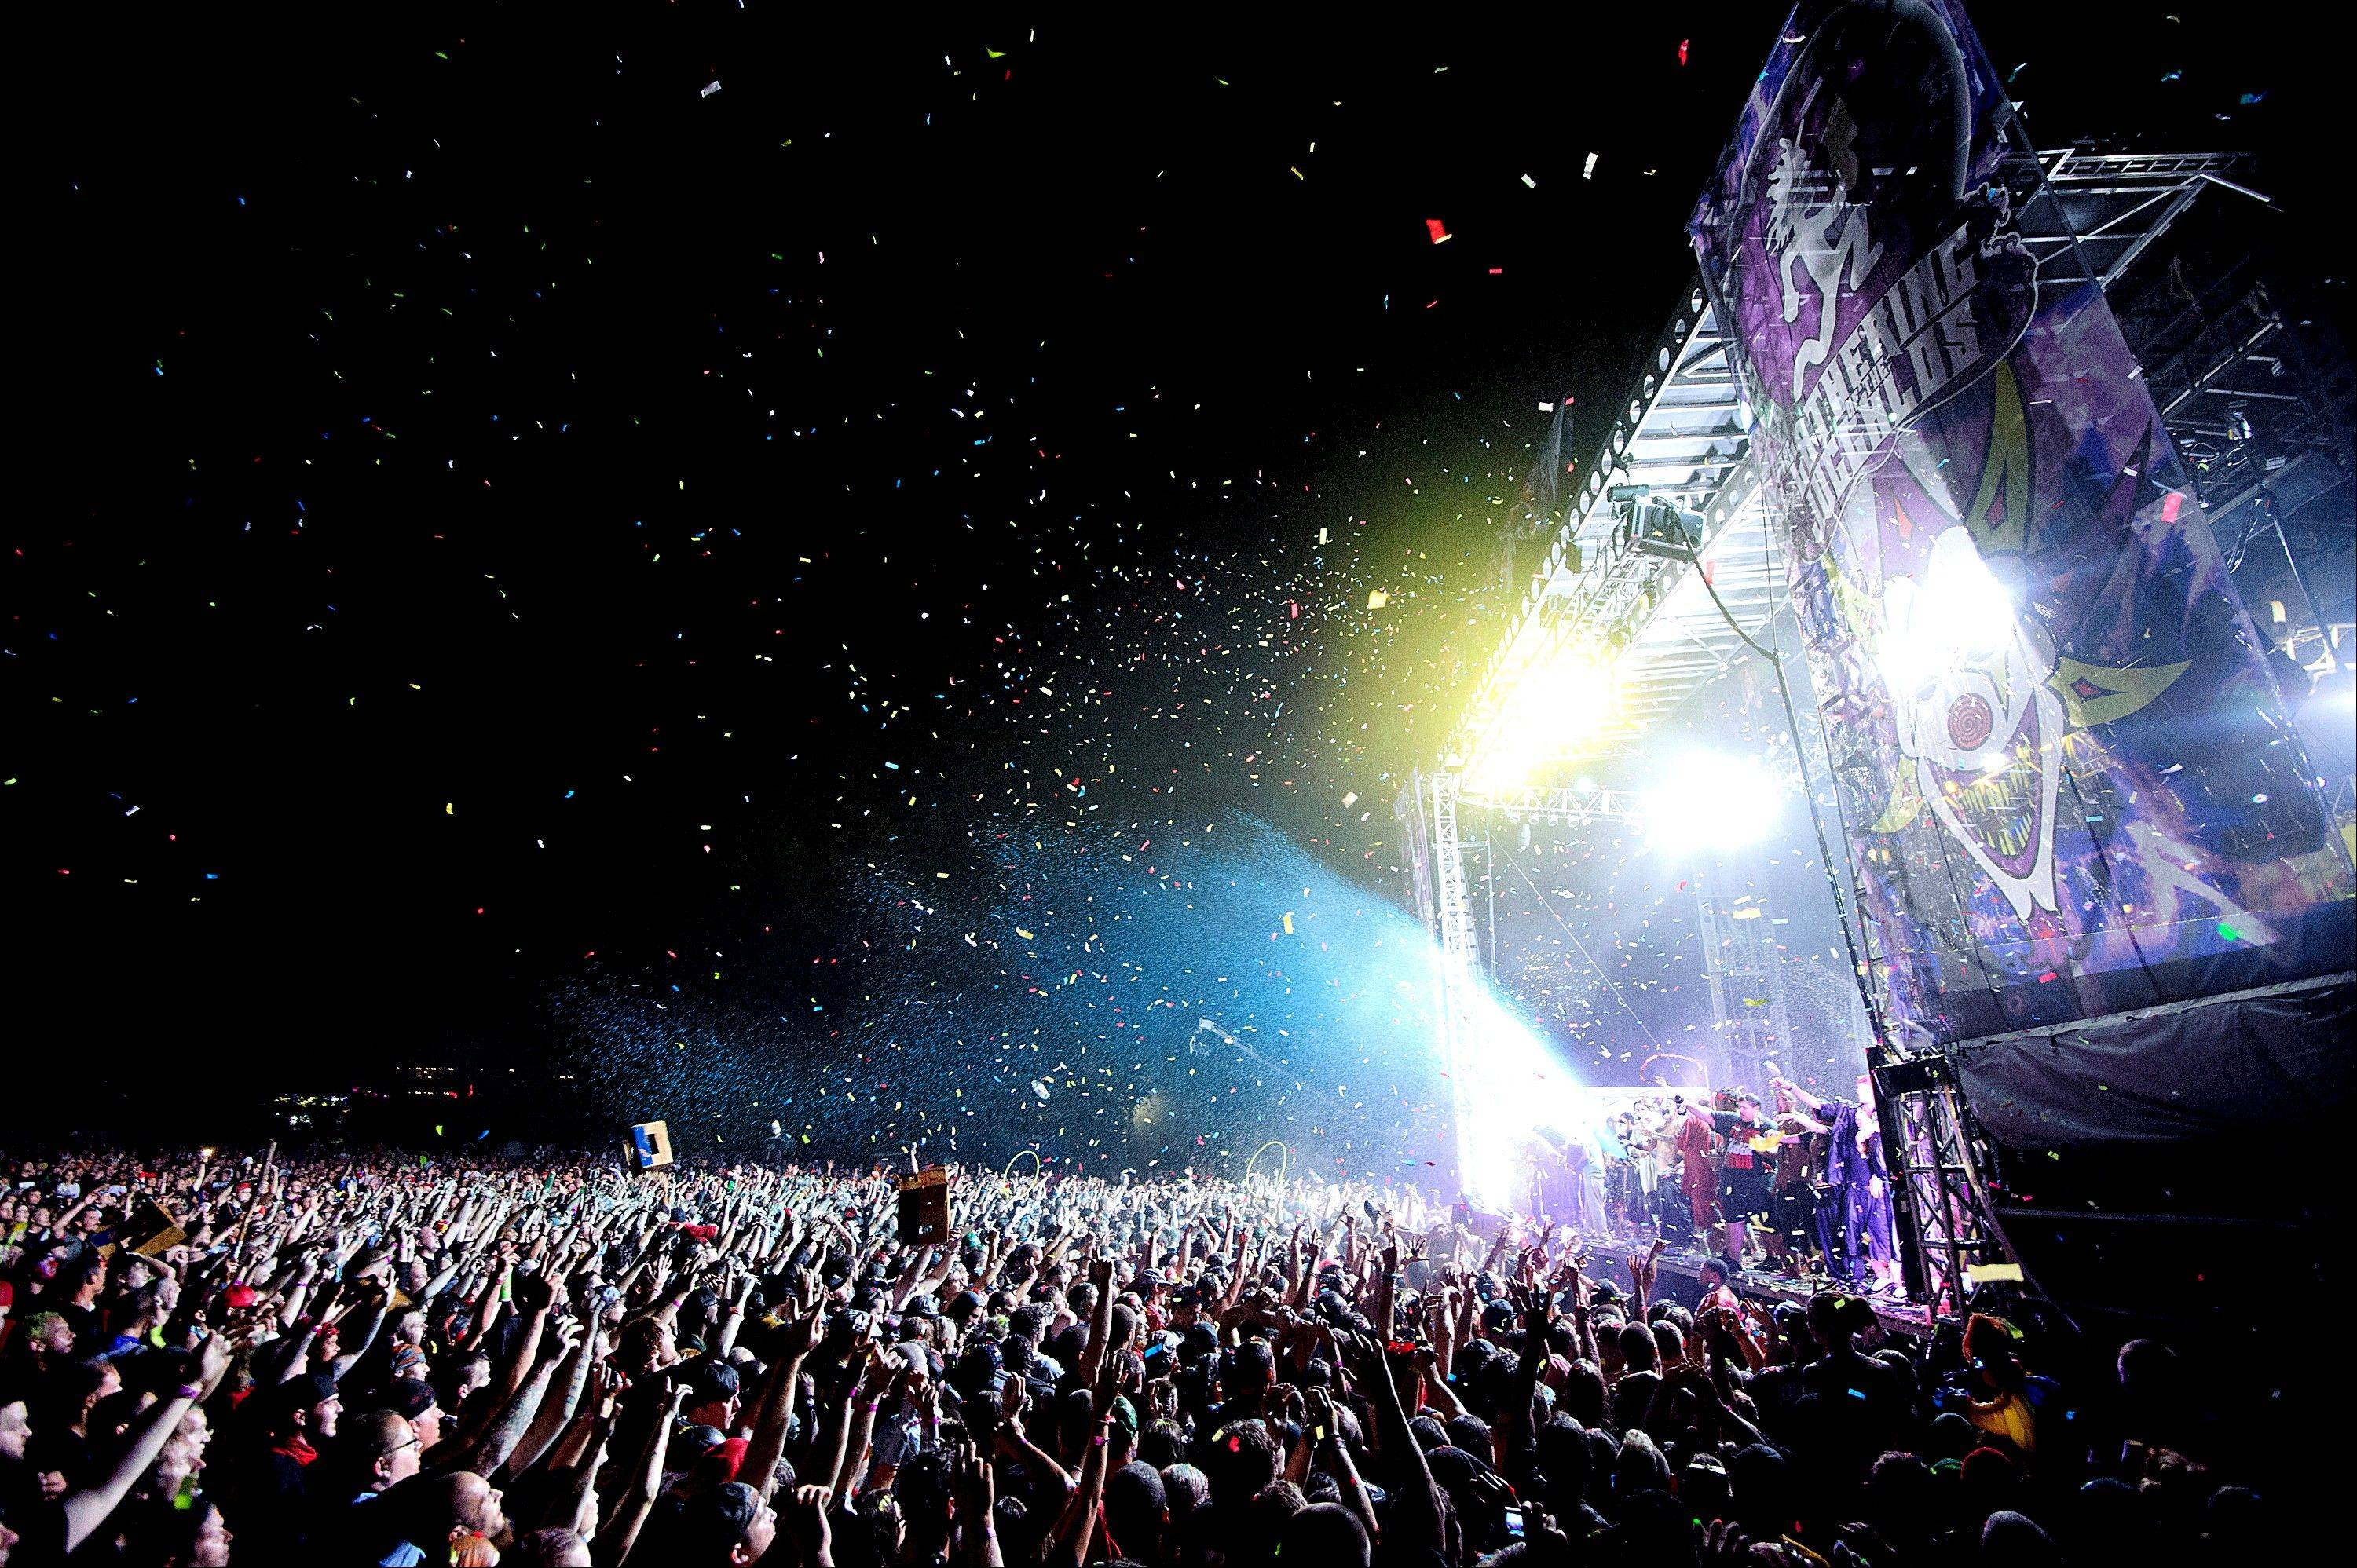 In this Aug. 11, 2012 photo, confetti is released over the crowd for the grand finale of I.C.P.�s headline performance on the final night of the Gathering of the Juggalos at Hogrock Campgrounds in Cave-In-Rock, Ill. Vendors at this year�s outdoor festival featuring rap-metal group Insane Clown Posse are complaining they�re owed thousands of dollars by promoters of the southern Illinois event, who now pledge they�ll find a way to pay the tab.